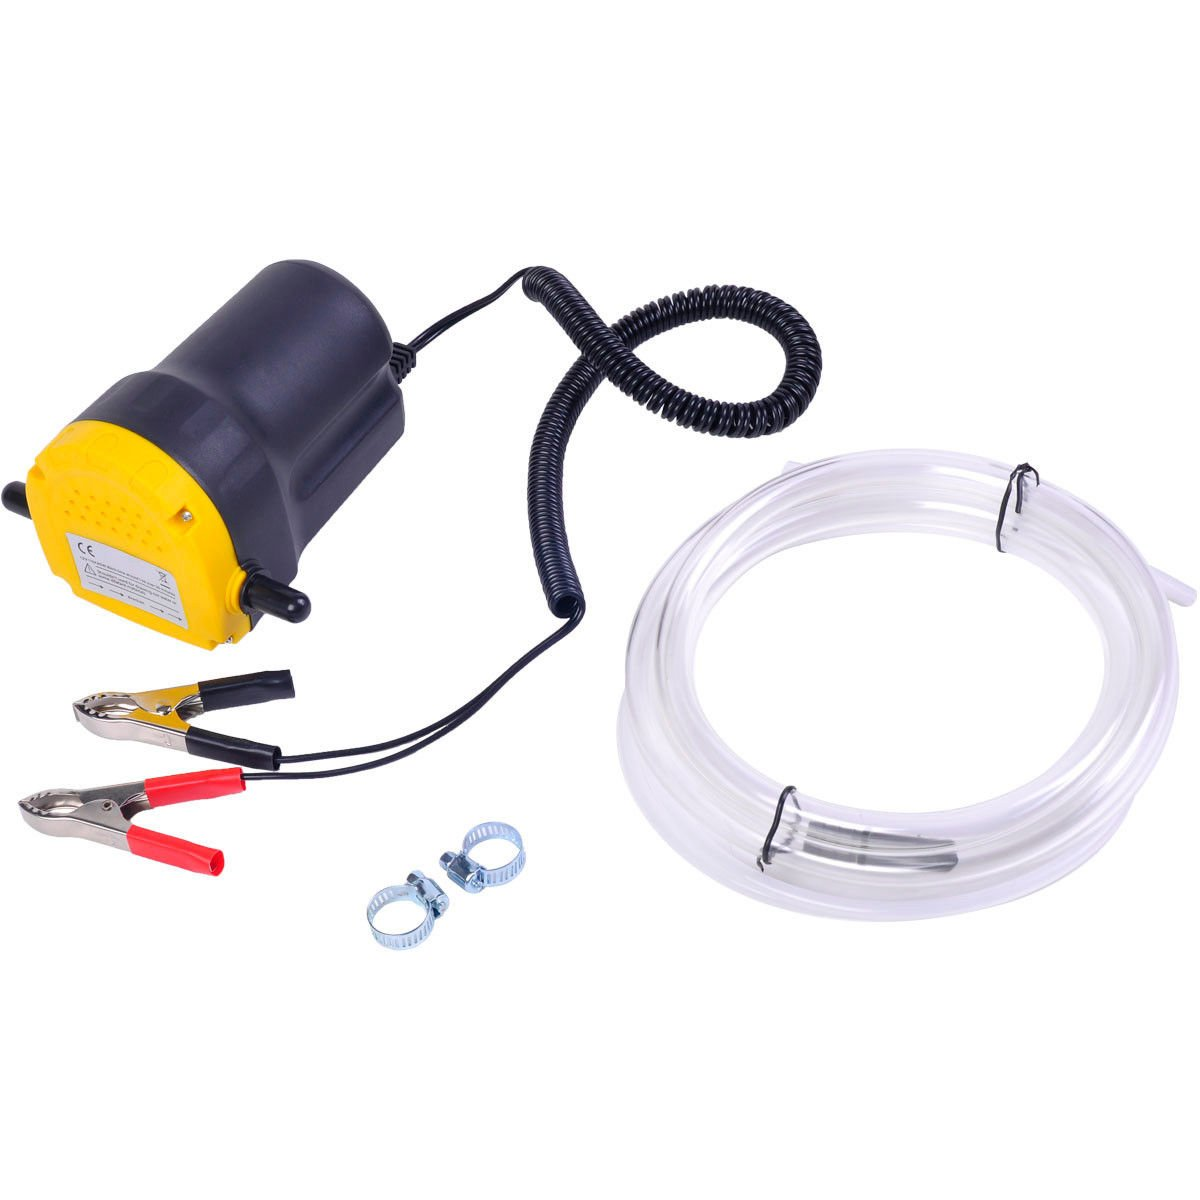 12V 5A Oil/Diesel Fluid Extractor Electric Transfer Pump For Car/Motorbike by SNC (Image #2)